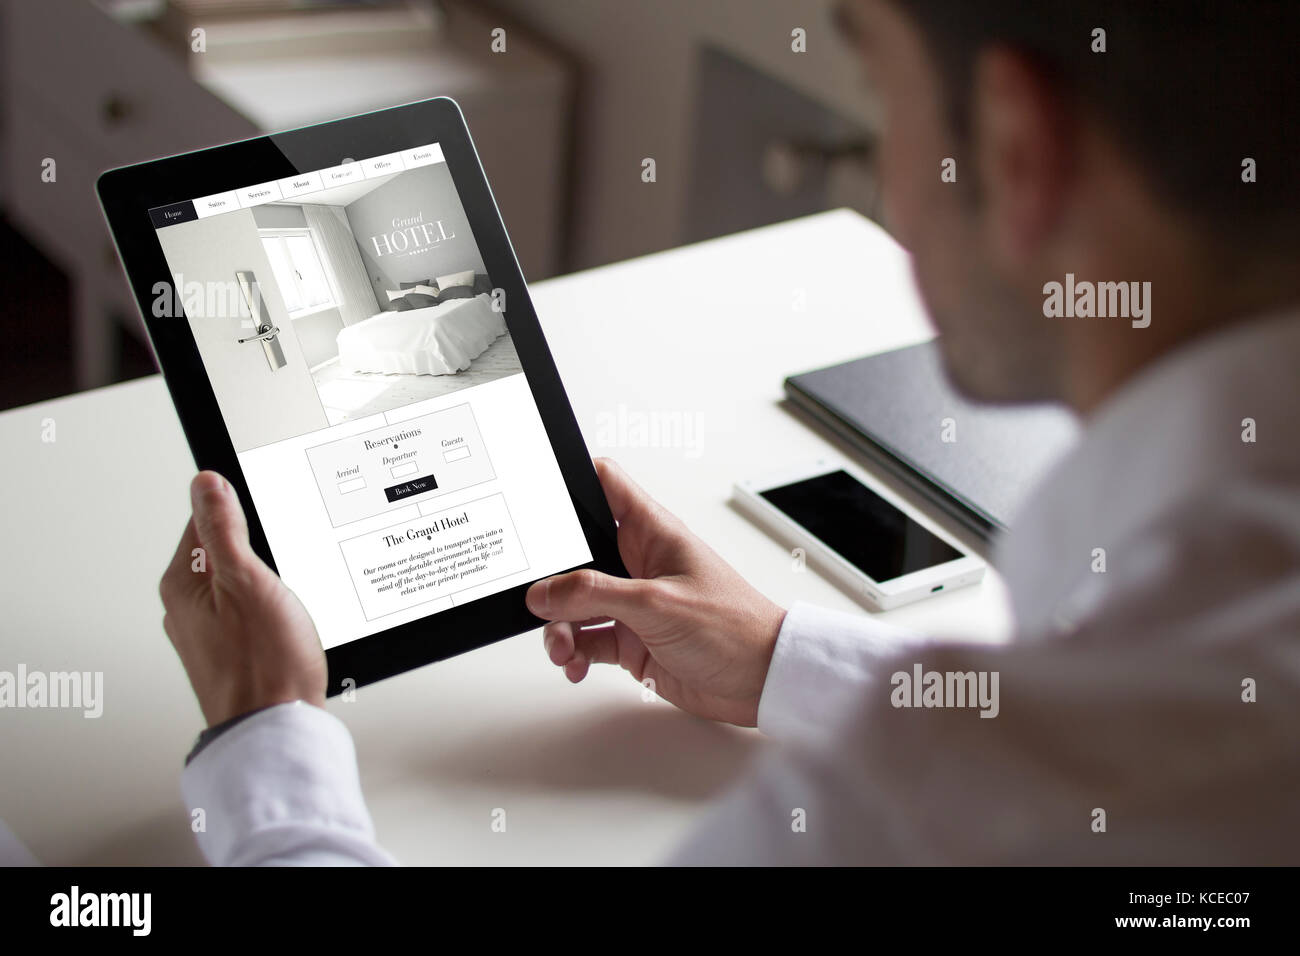 Bussinessman stock photos bussinessman stock images alamy for Tablet hotel booking